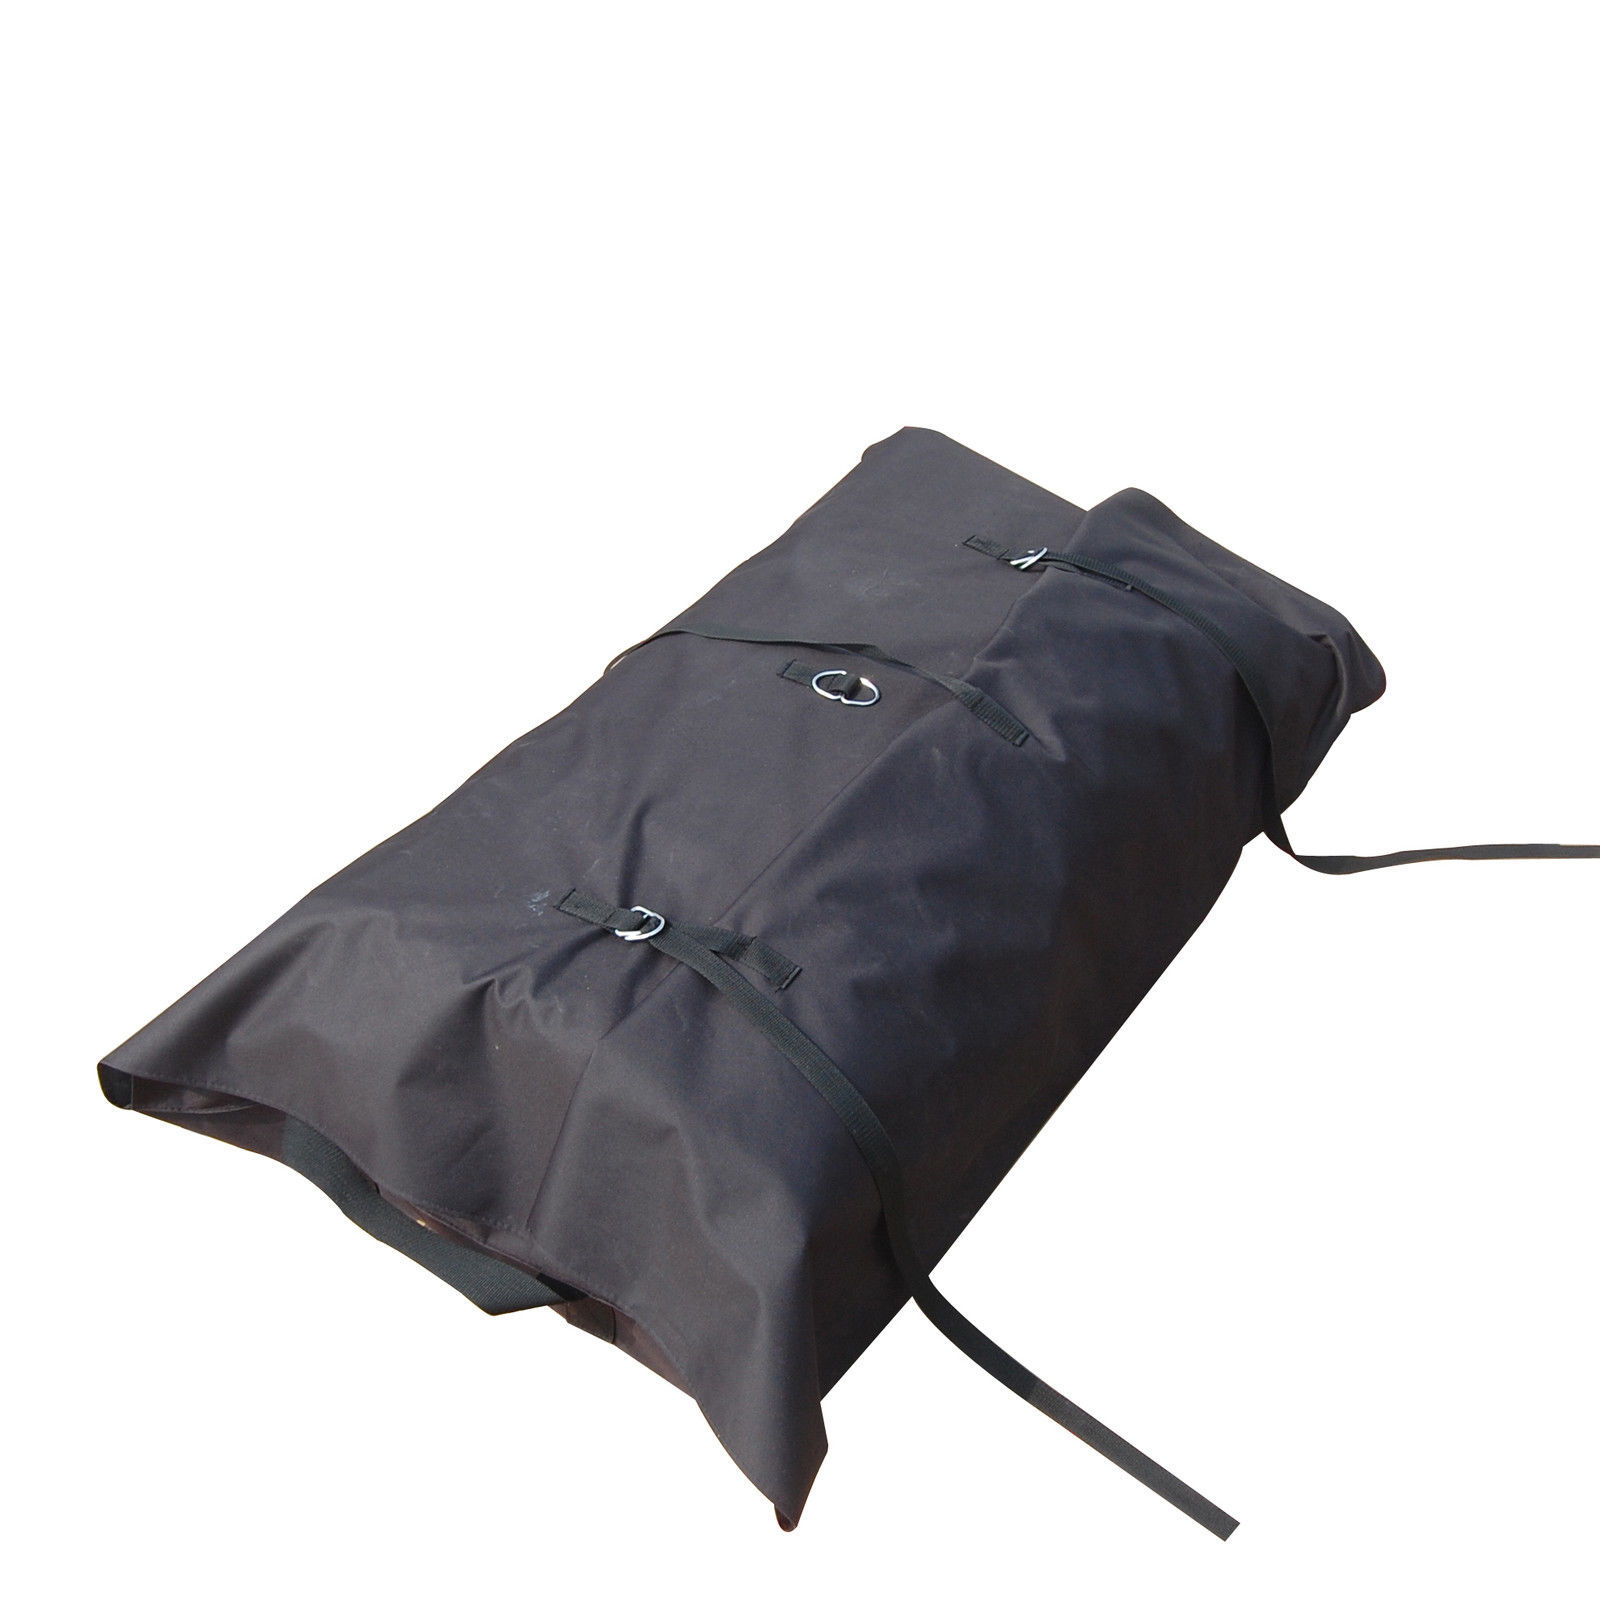 CARRYING BAG STORAGE BAG FOR INFLATABLE BOAT